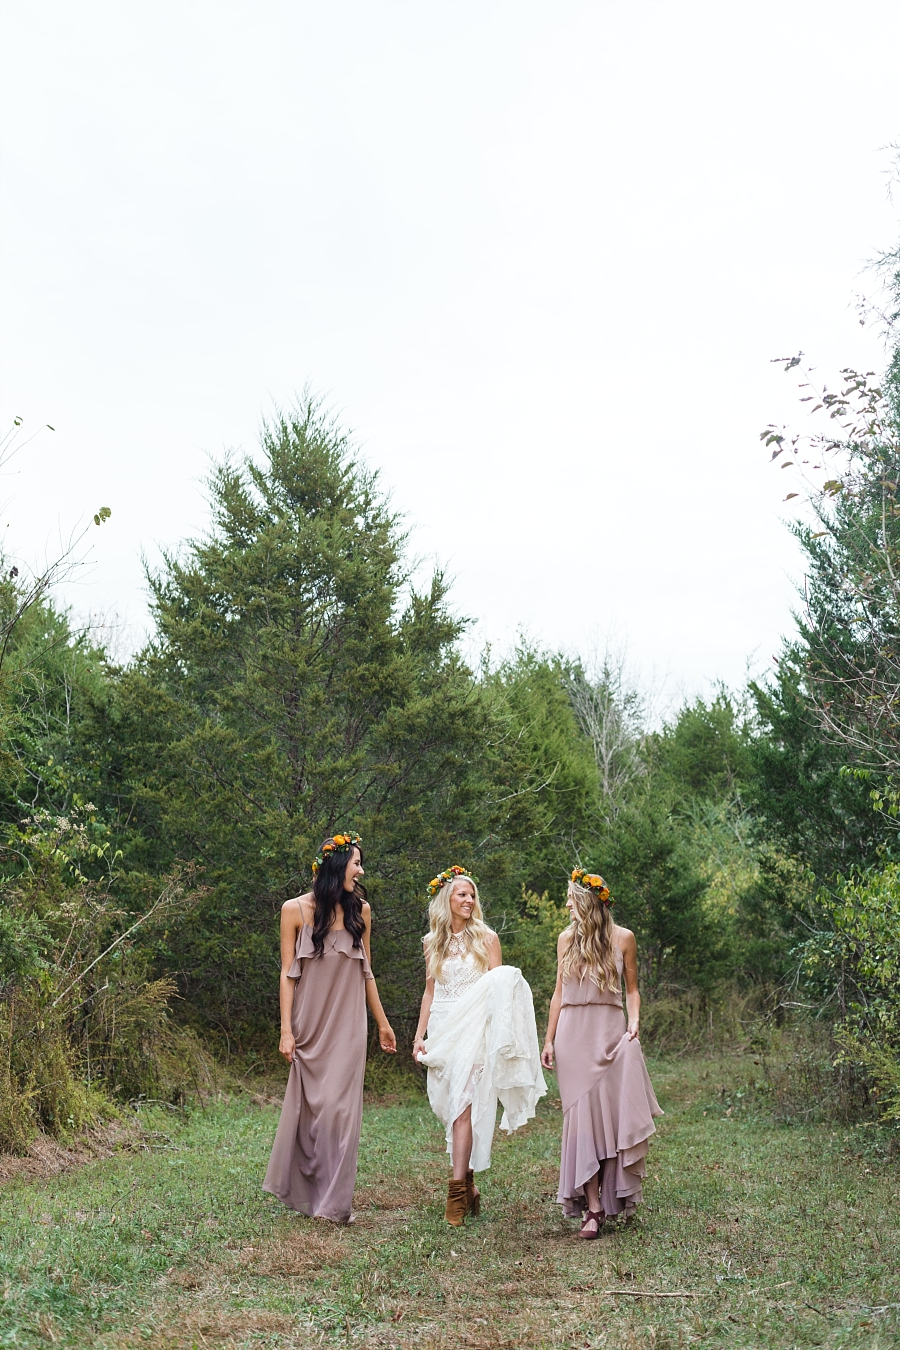 Stacy-Anderson-Photography-Cedarwood-Weddings-Nashville-Destination-Wedding-Photographer_0064.jpg